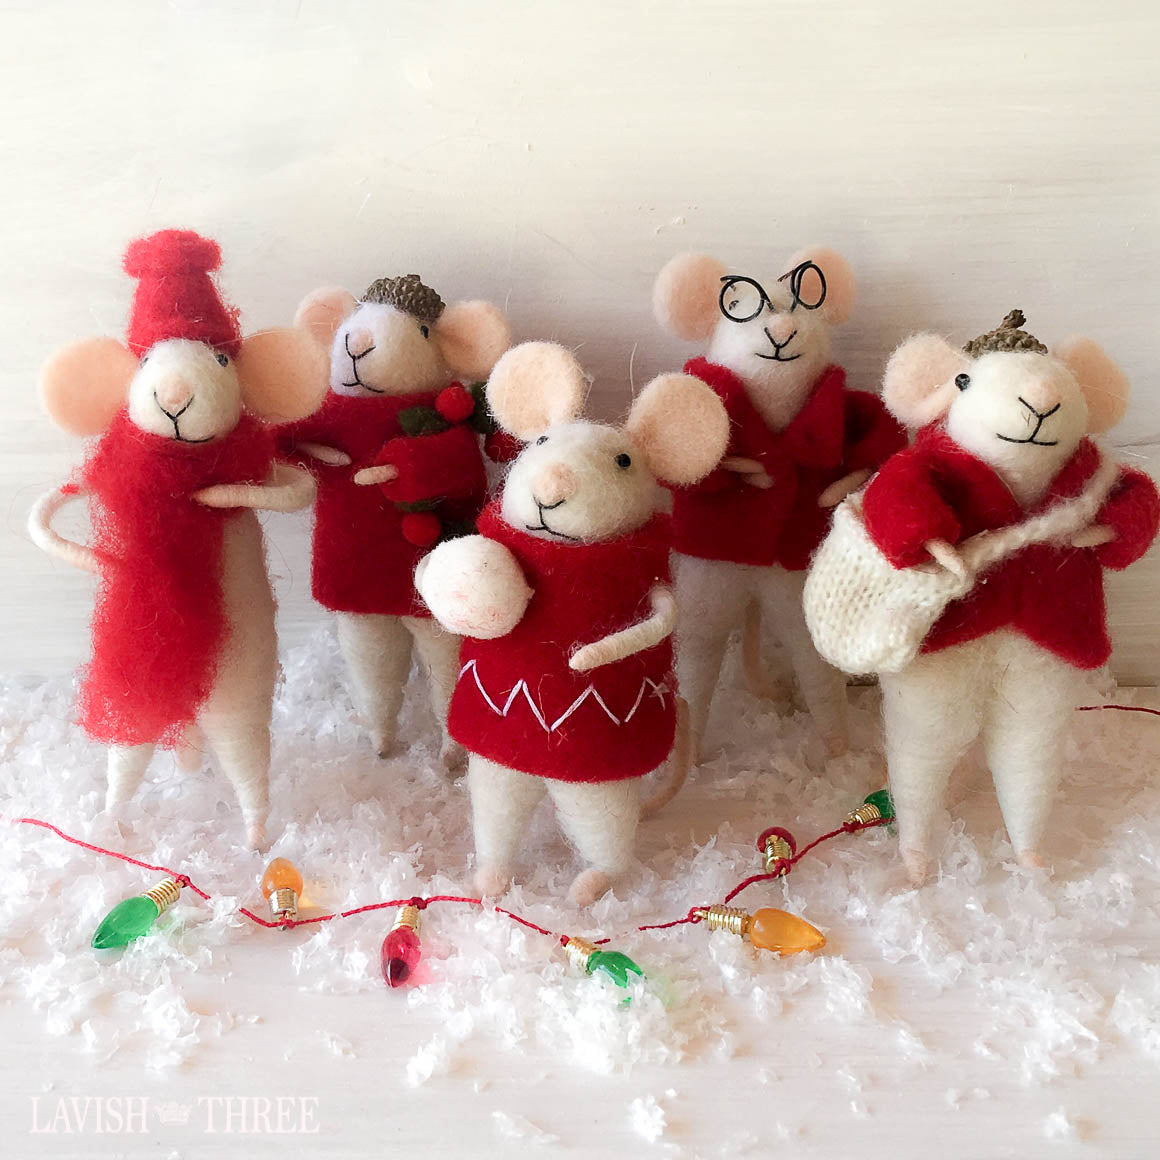 Plush mouse mice christmas tree ornament set Lavish Three 3